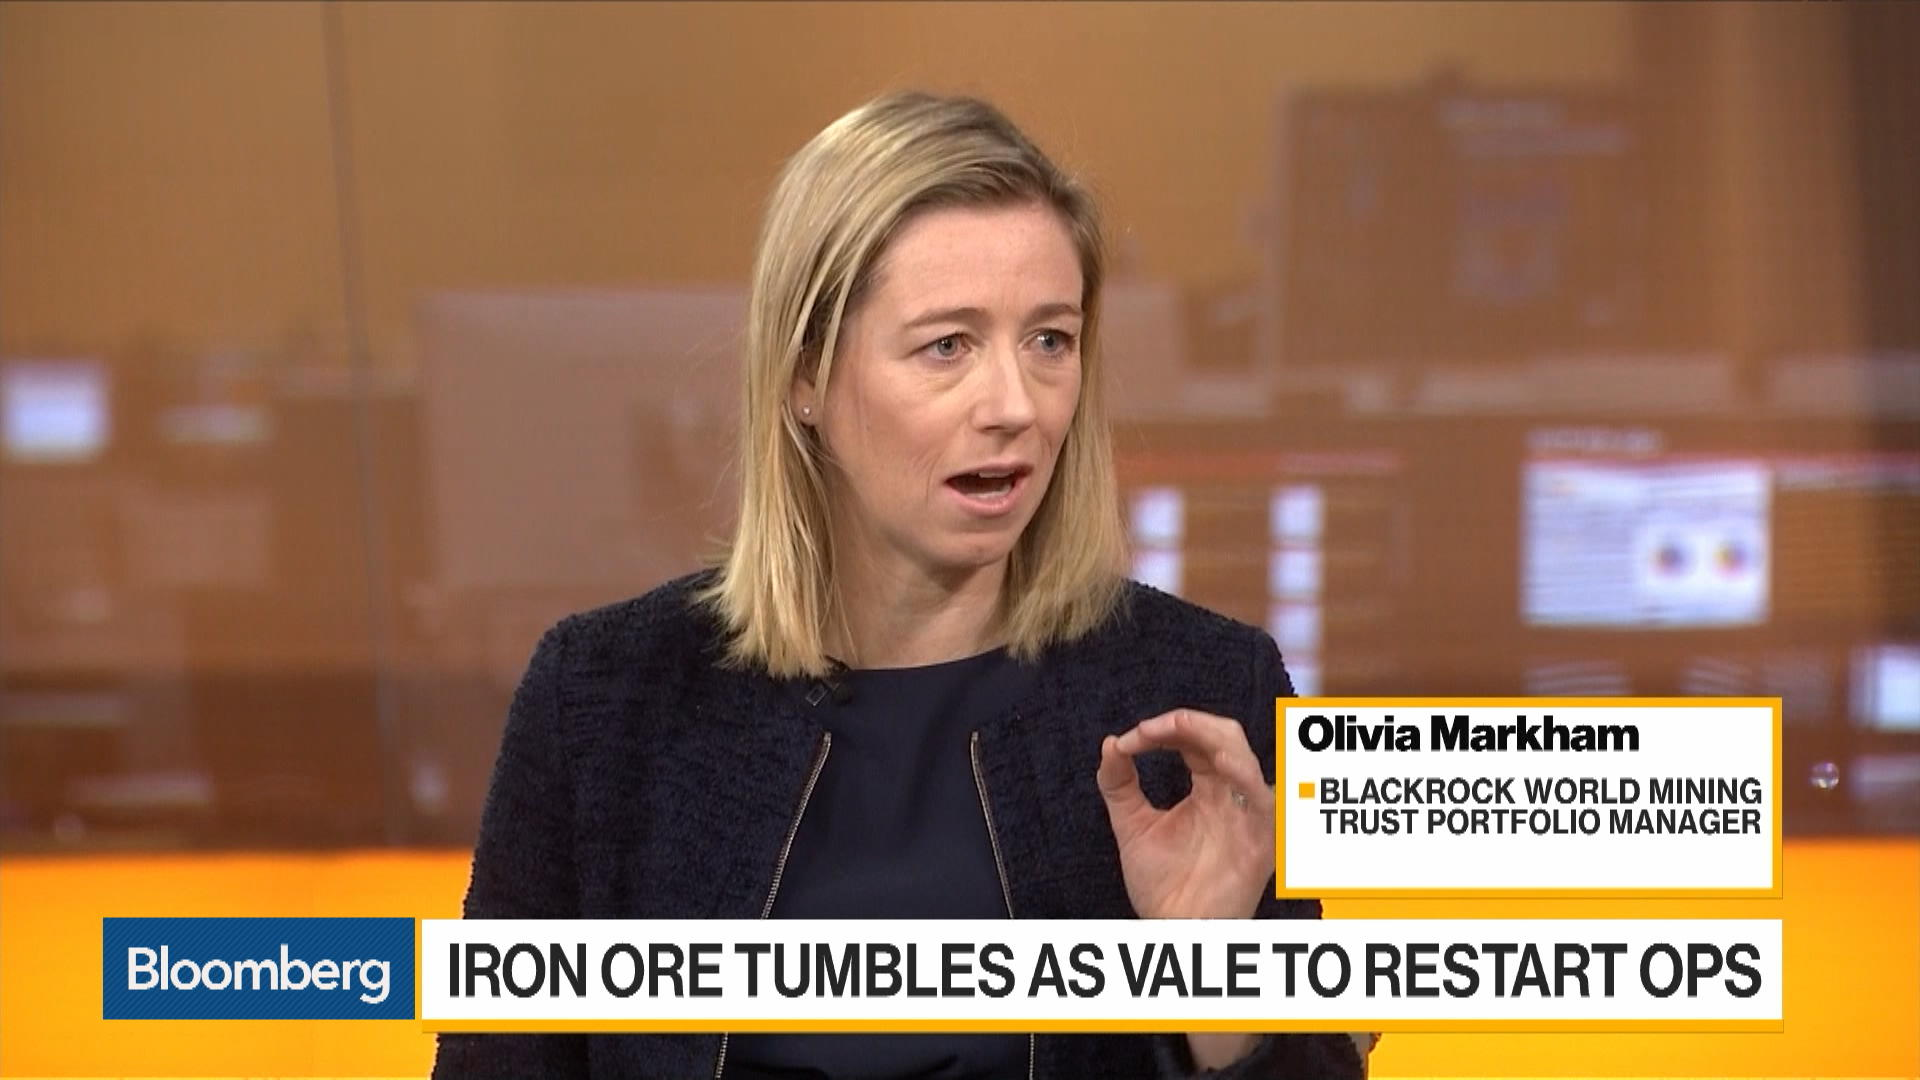 We're In the Eye of the Storm Right Now for Iron Ore Prices, Says BlackRock's Markham